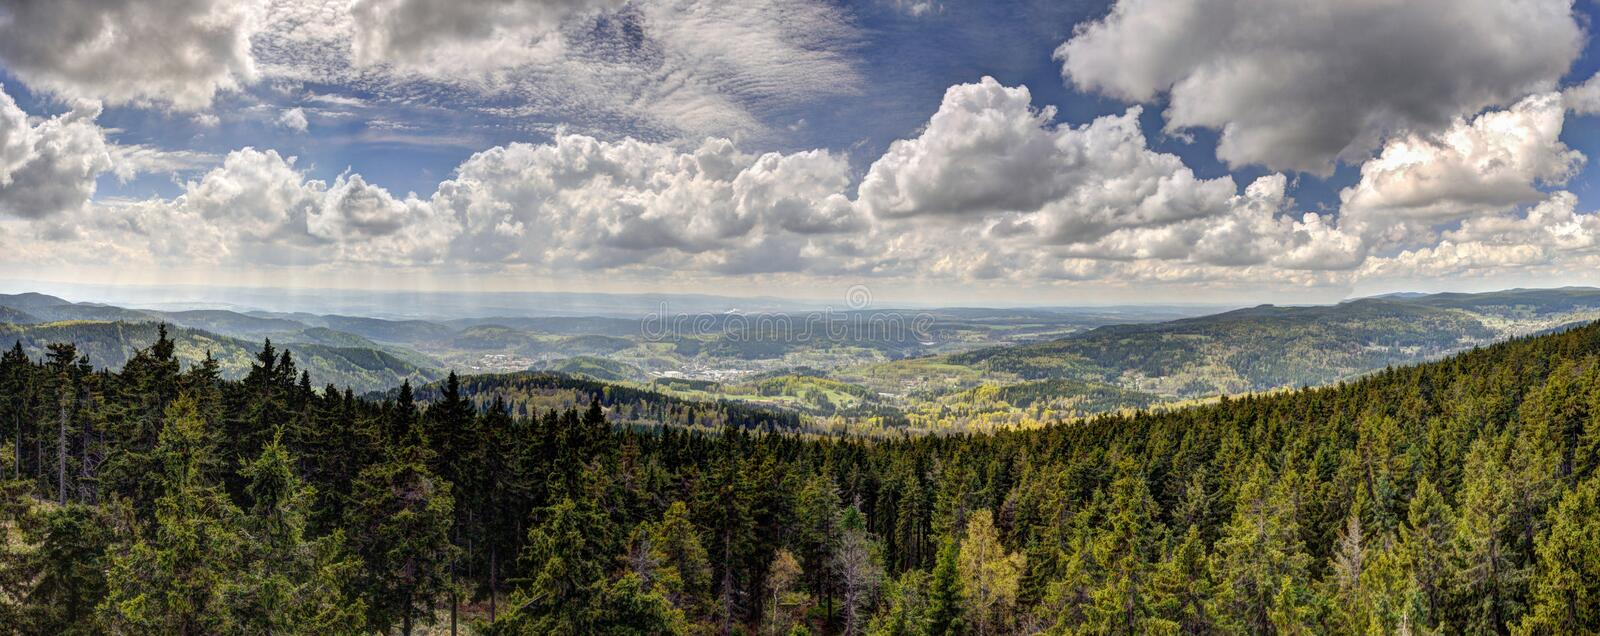 Download HDR Panorama With Forest Mountains And Cloudy Sky Stock Photo - Image: 40212258